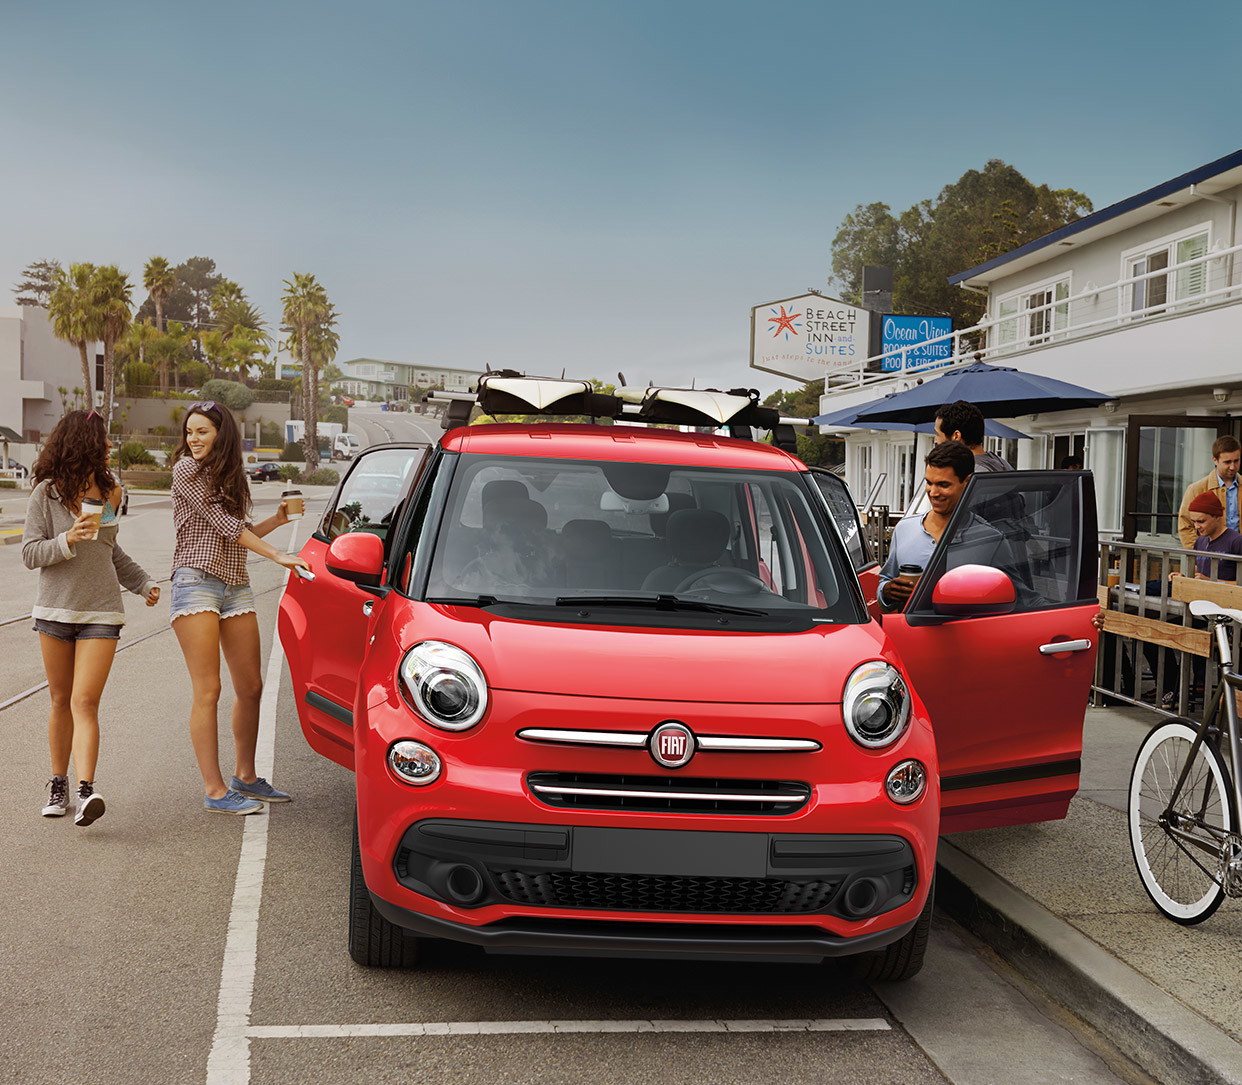 2019 Fiat 500L parked on a city street, shown in red